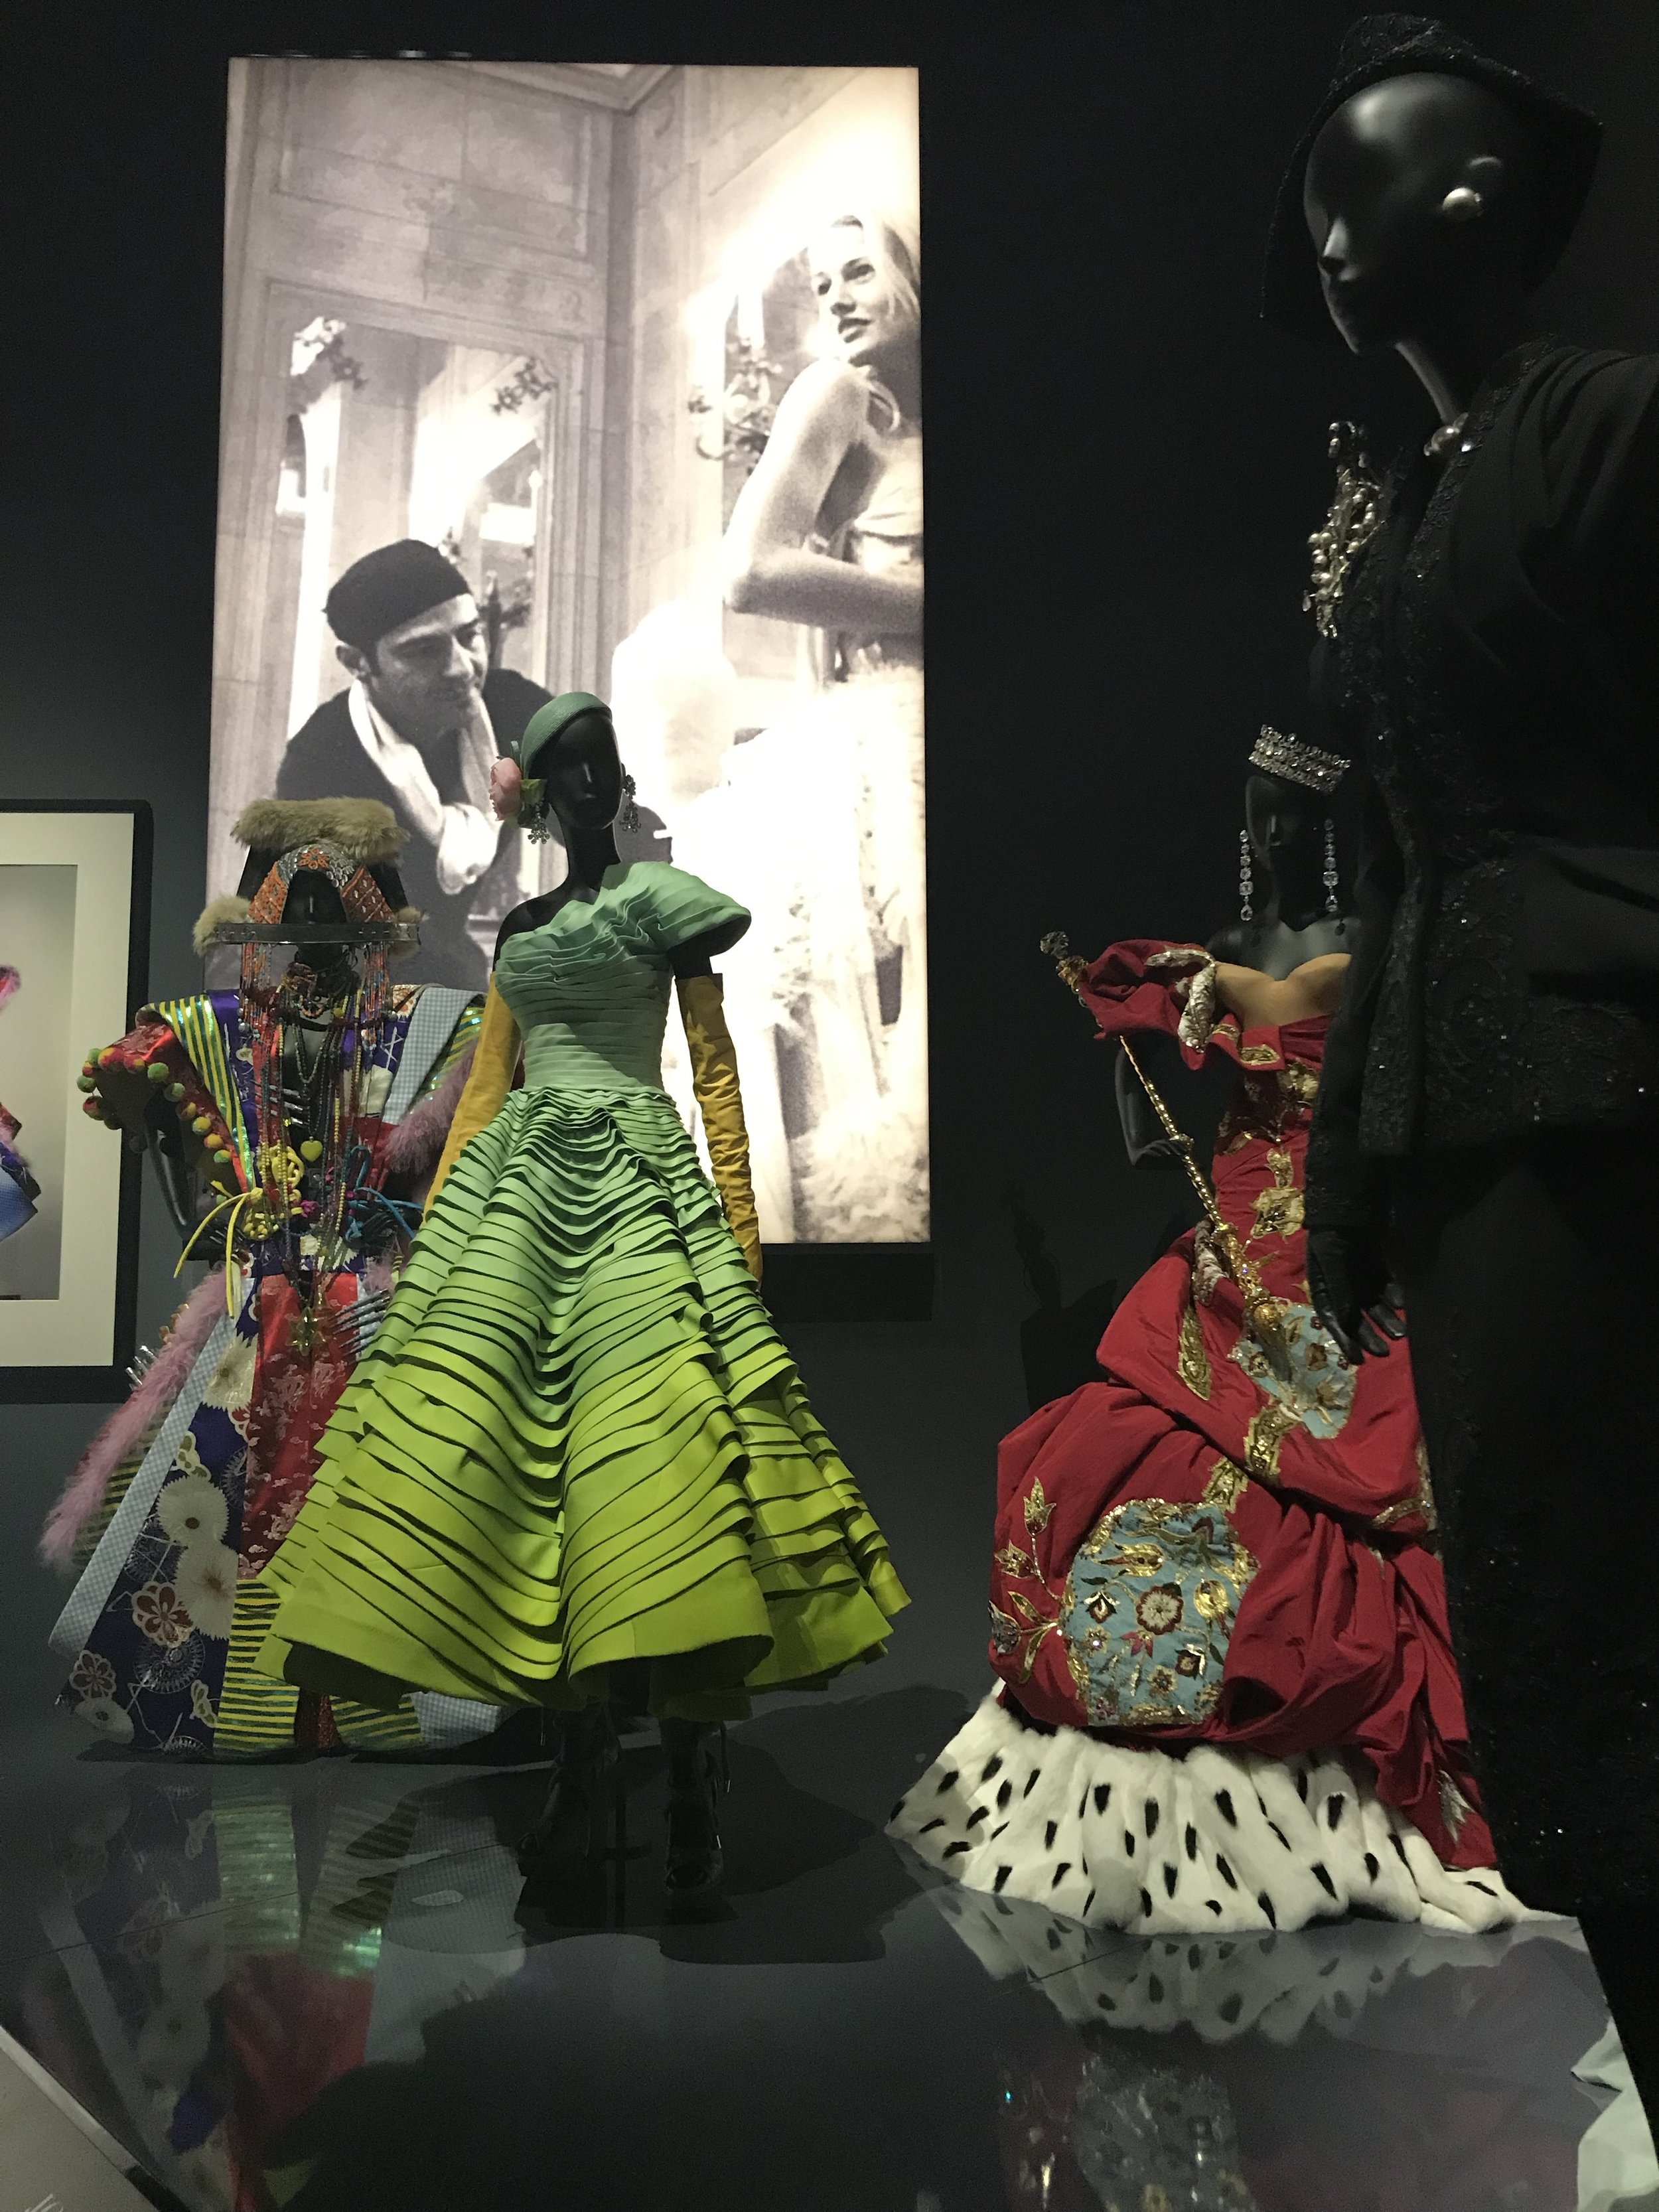 A shot of John Galliano provides the backdrop for some of his Dior designs